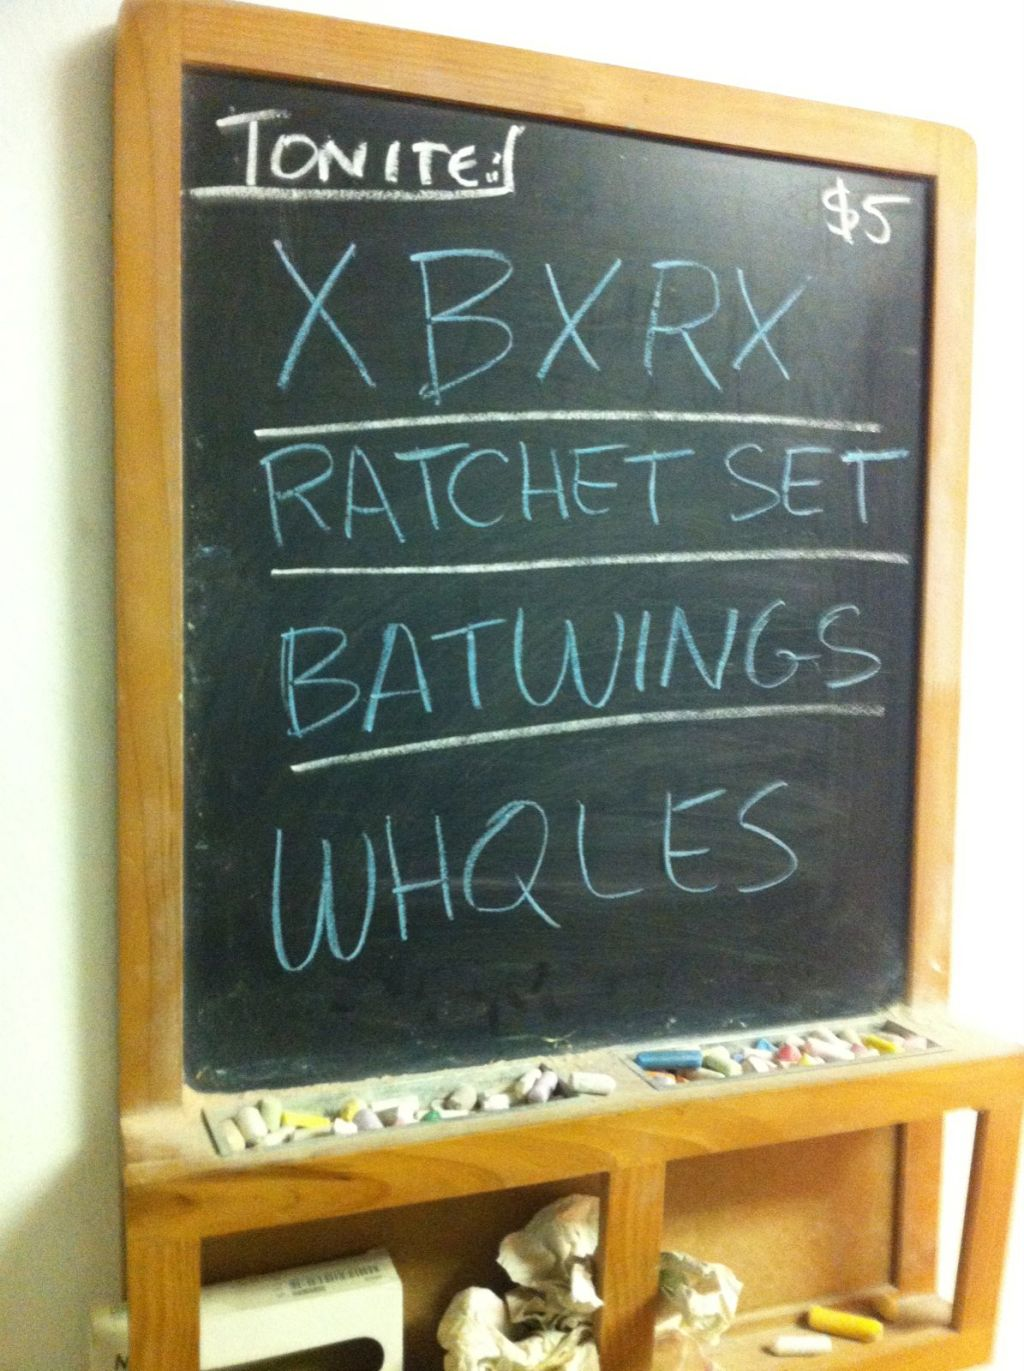 Photos: XBXRX, Ratchet Set, Whqles, Batwings